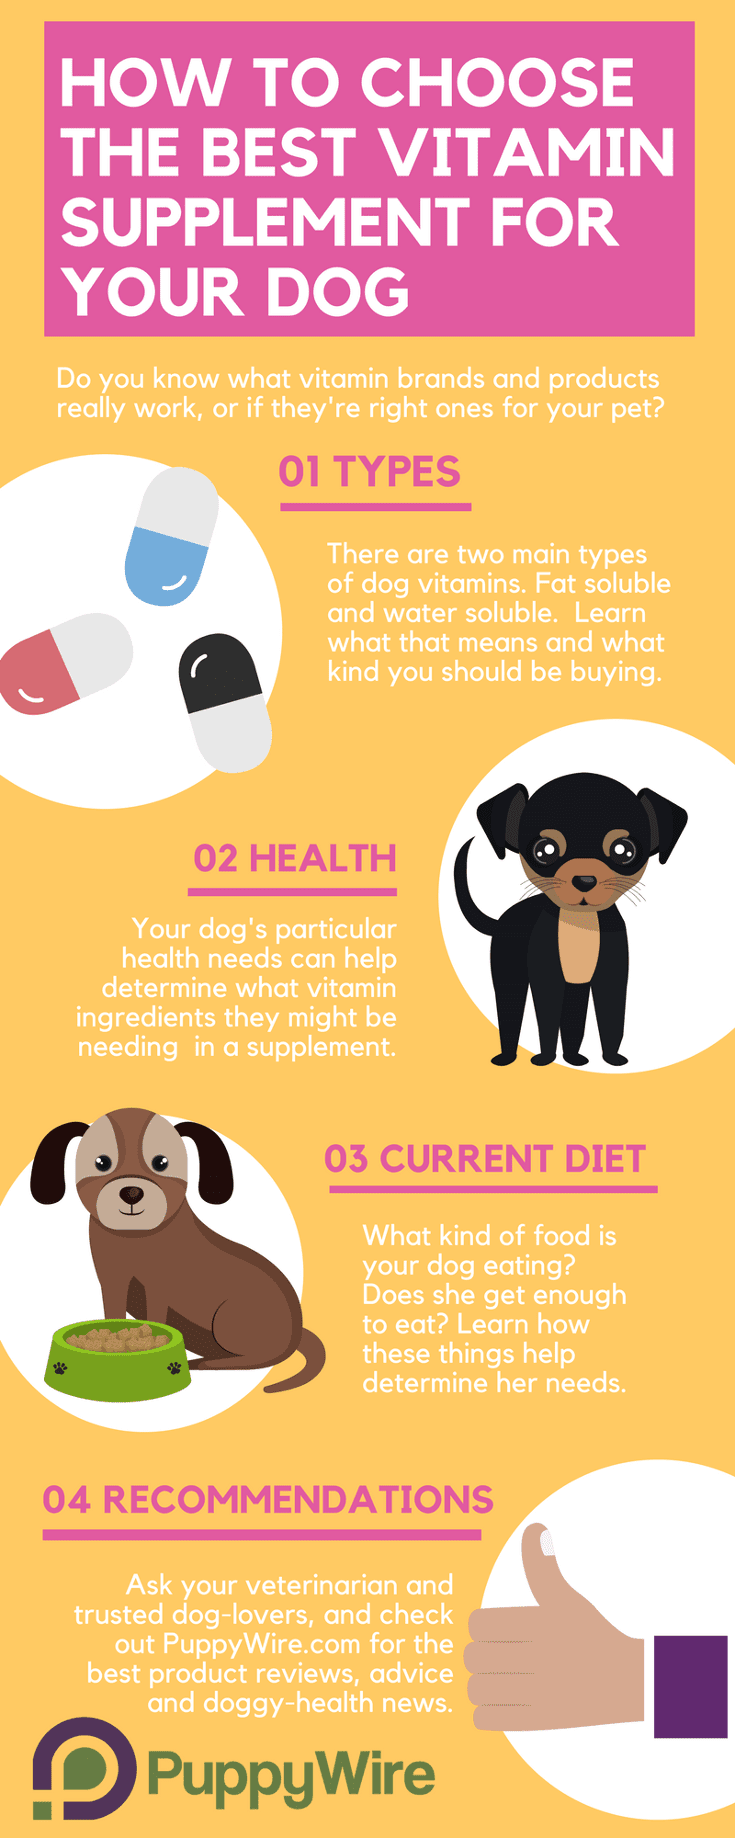 Choosing the best multivitamin for dogs can be challenging. We cover the most important aspects to help regardless if you are looking for vitamins for puppies, vitamins for itchy dry skin or coats, or just vitamins to supplement your dogs diet.